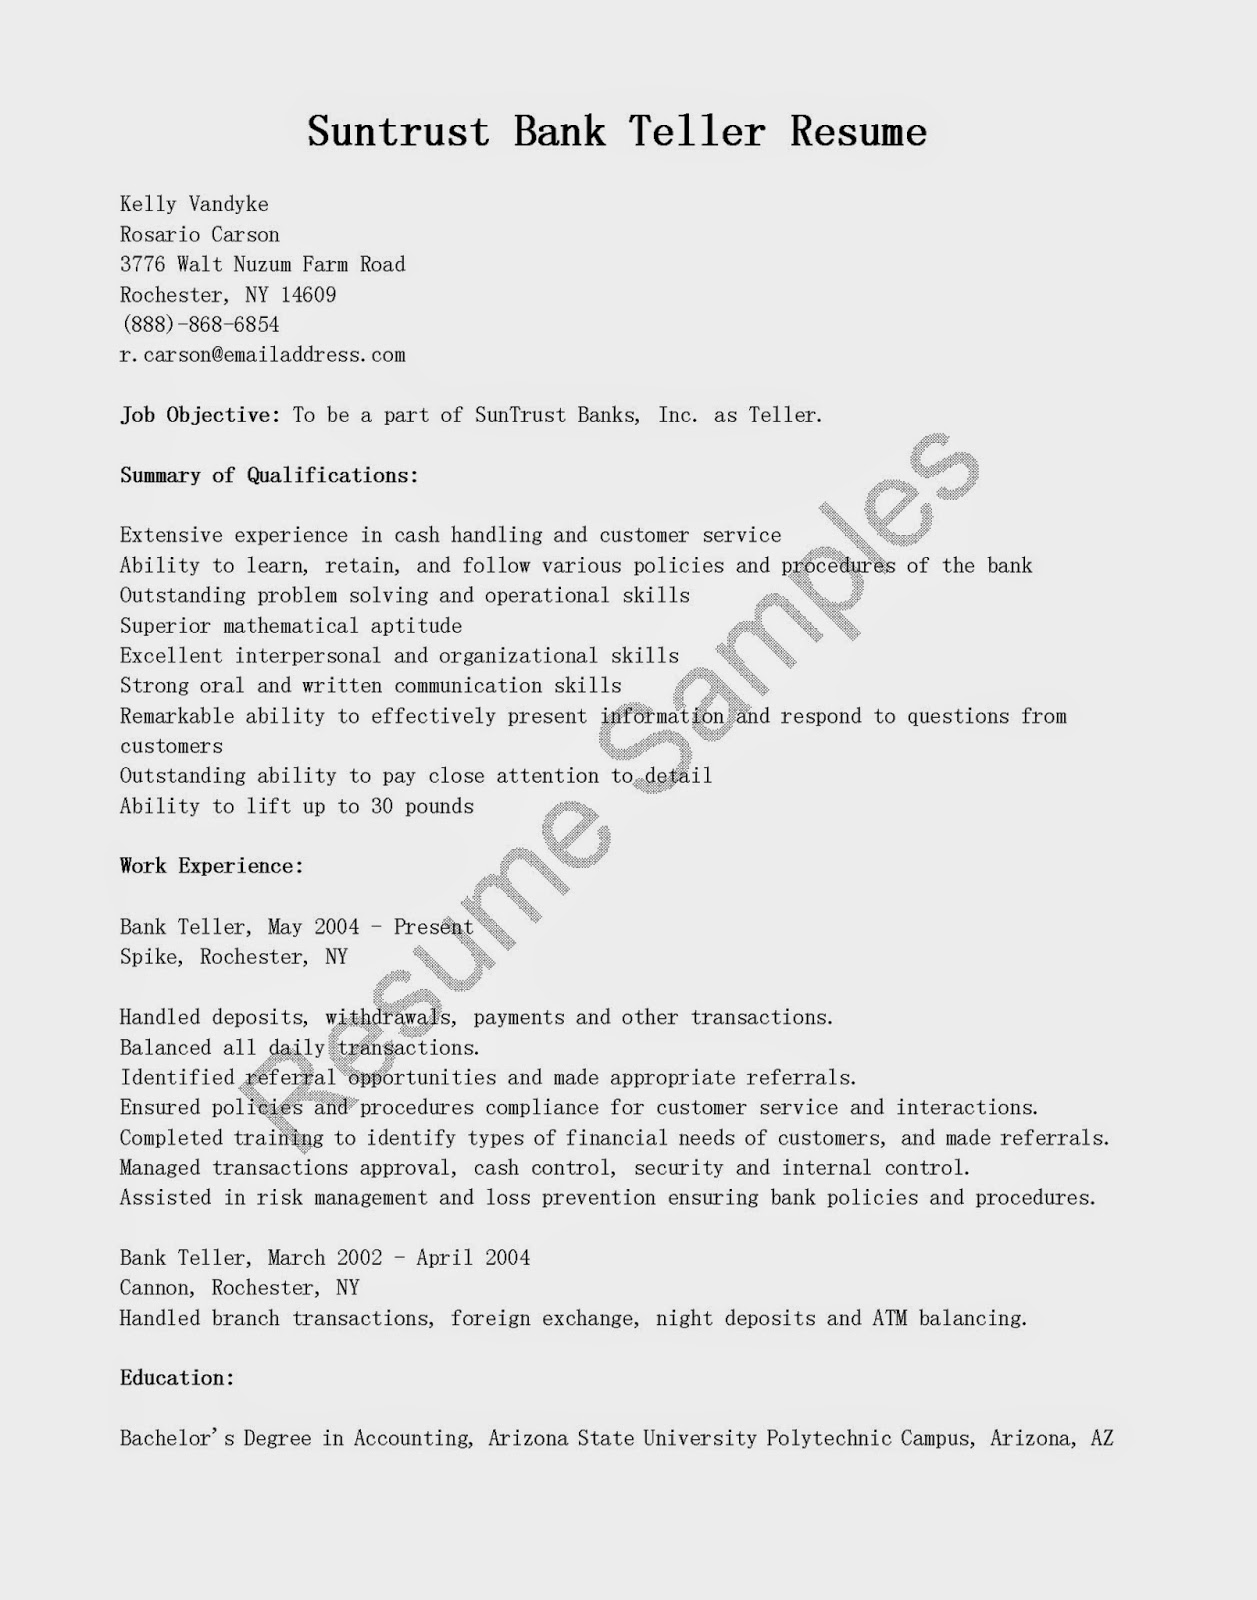 resumes for a bank teller job bank teller job description for resume resume genius - Objective For Bank Teller Resume